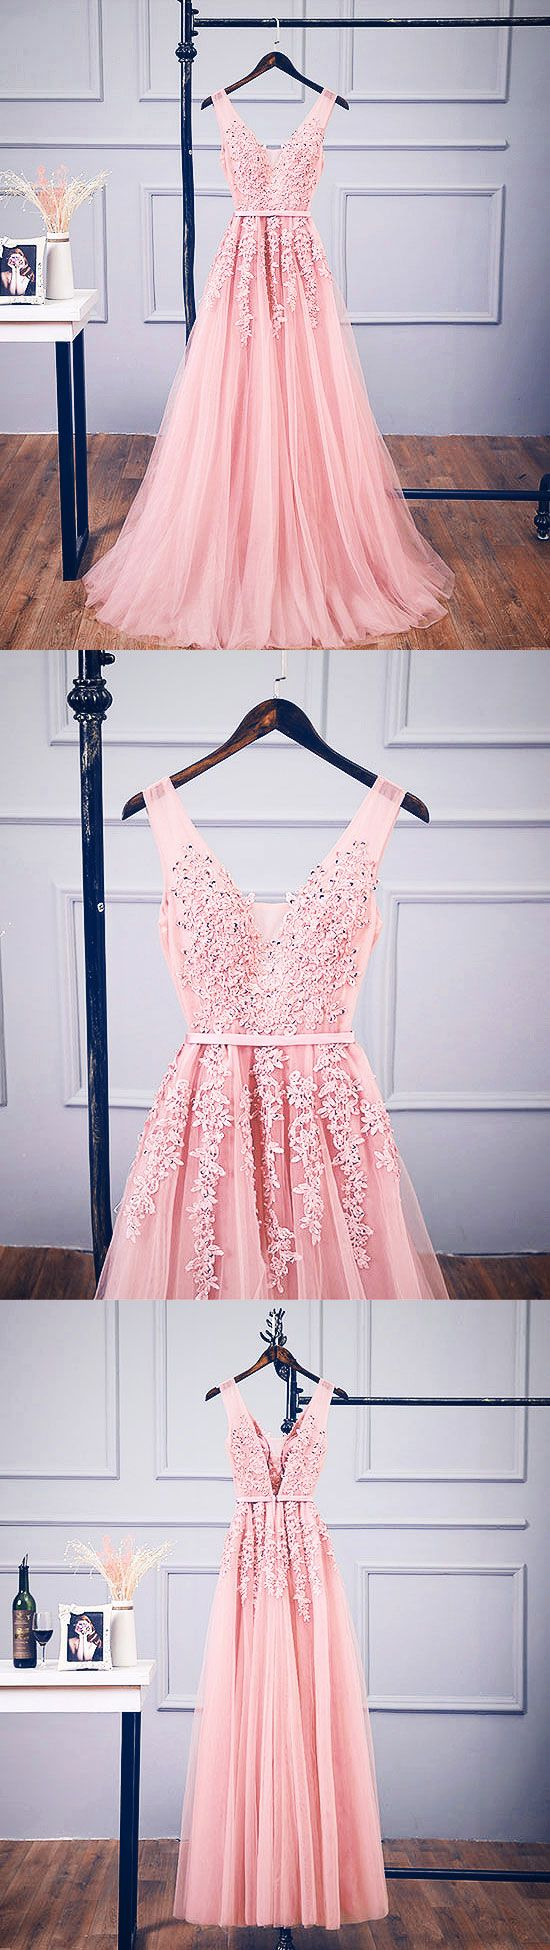 Pink v neck tulle lace applique long prom dress, pink bridesmaid dress